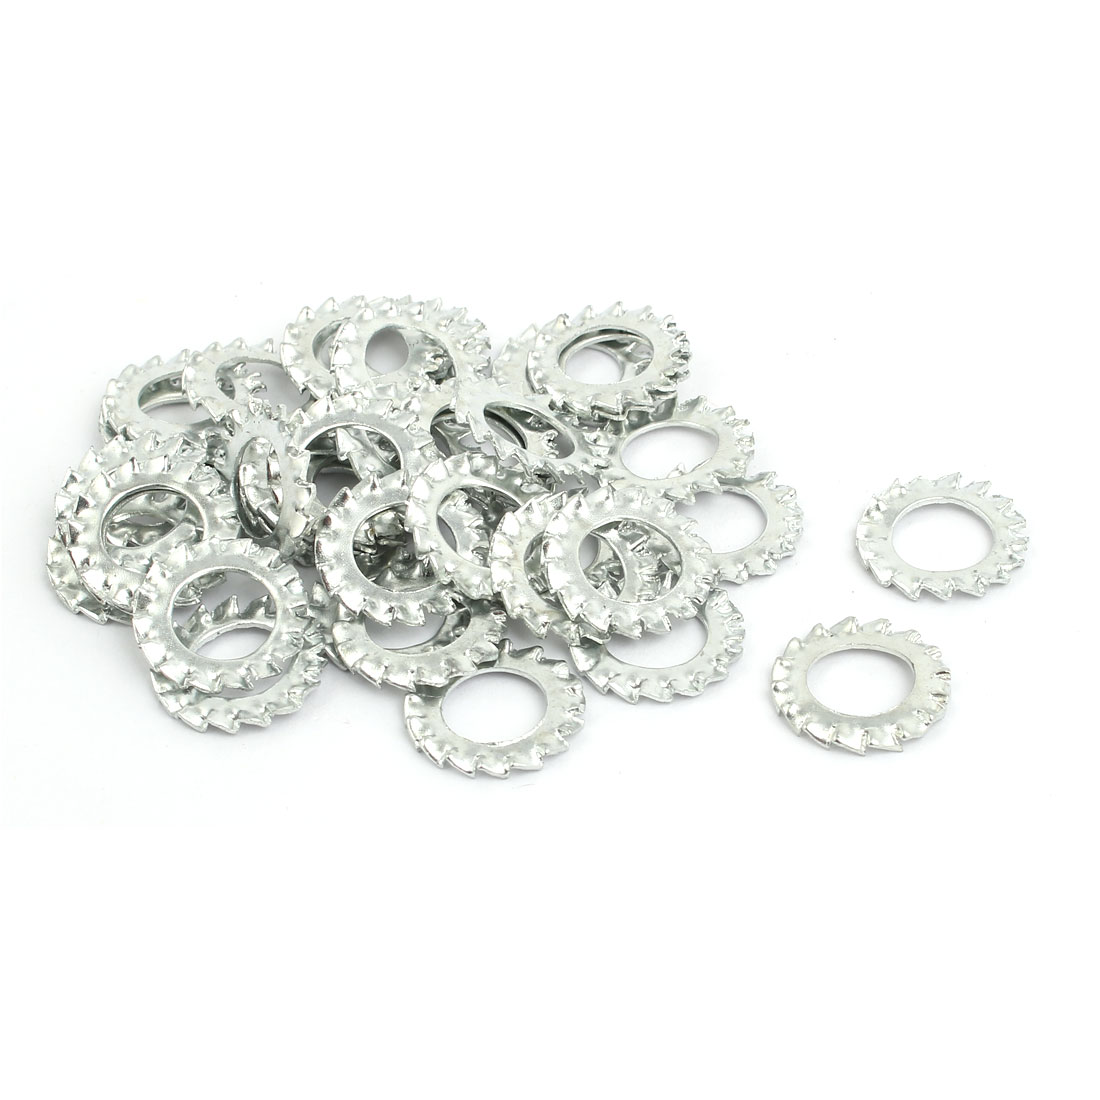 10mm Inner Dia Carbon Steel Zinc Plated External Tooth Lock Washer 40pcs